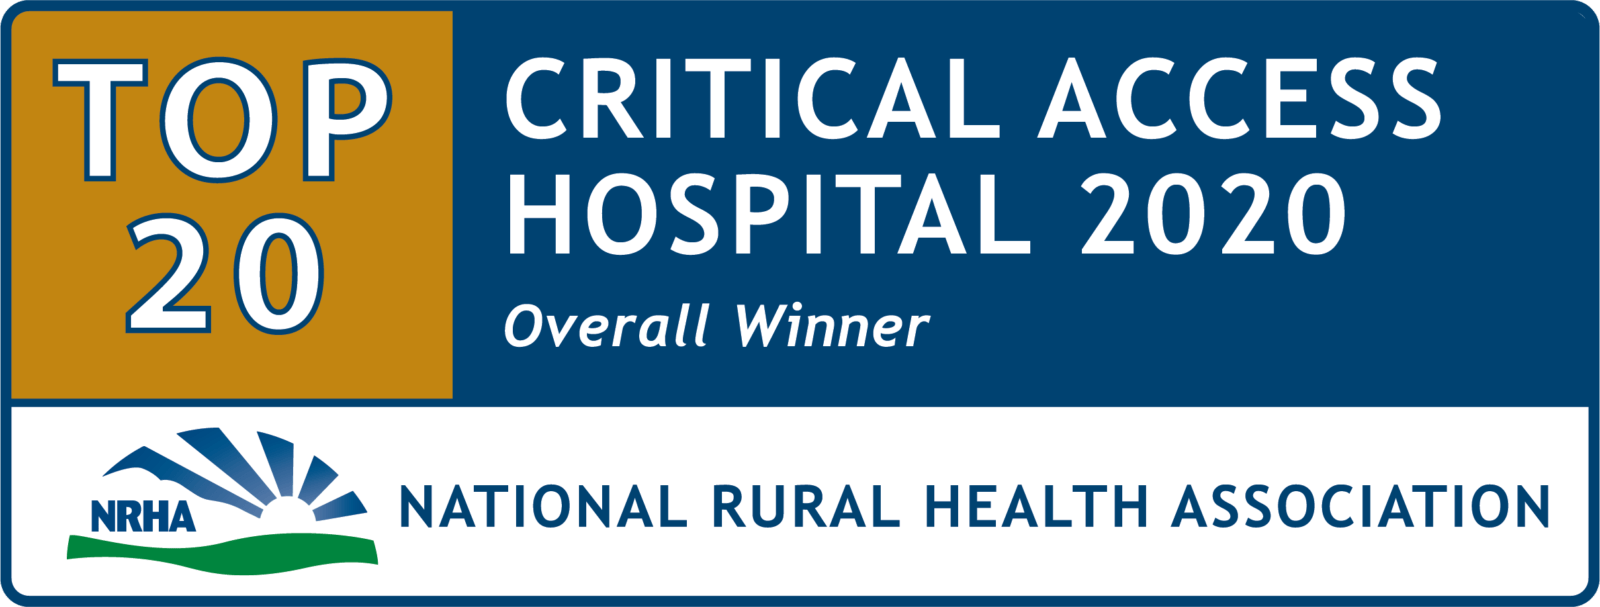 Upland Hills Health named in Top 20 Critical Access Hospital List